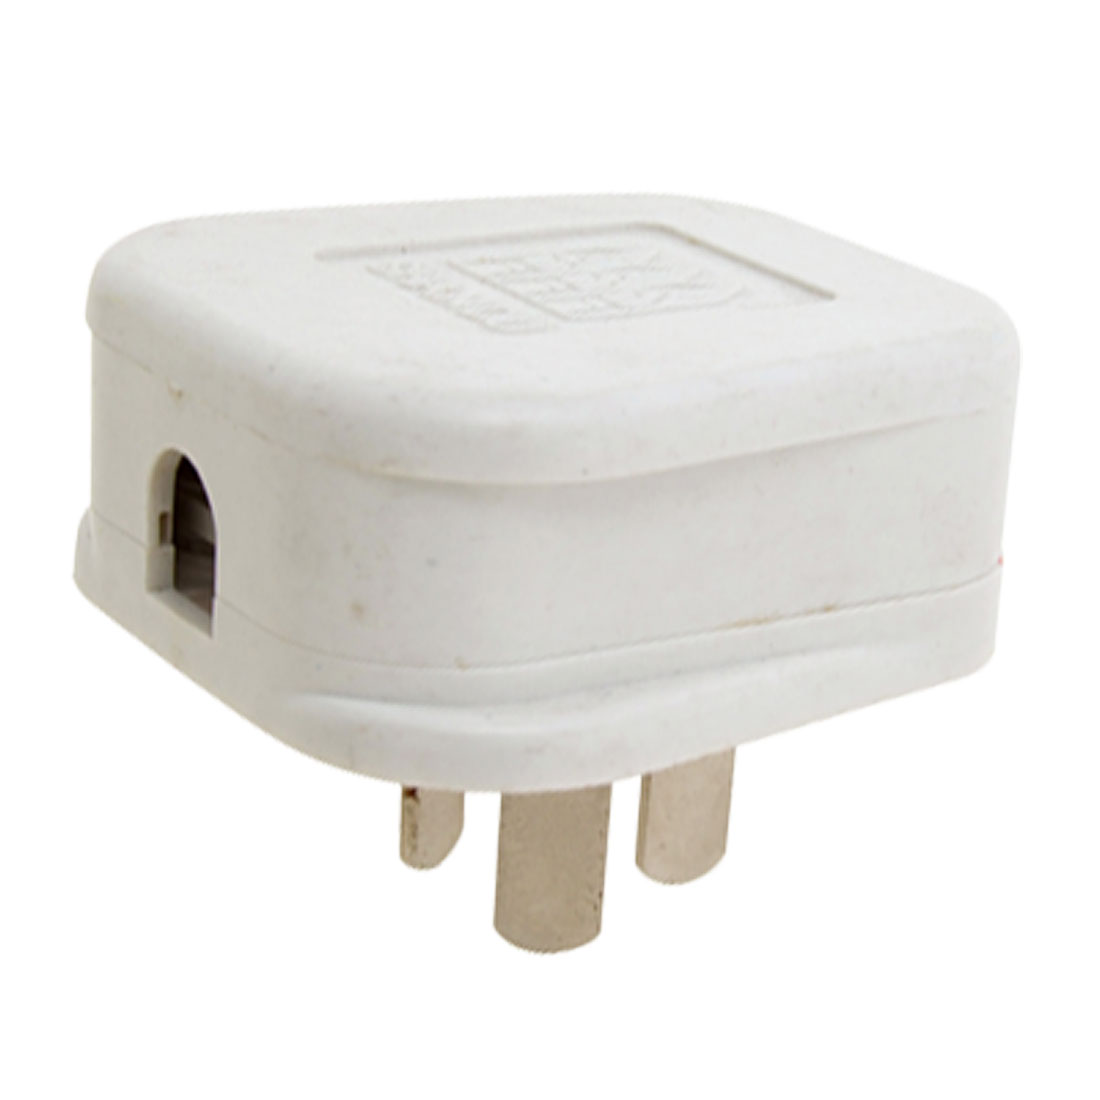 Three Flat Pin Wall AC Power Adapter AU Plug White